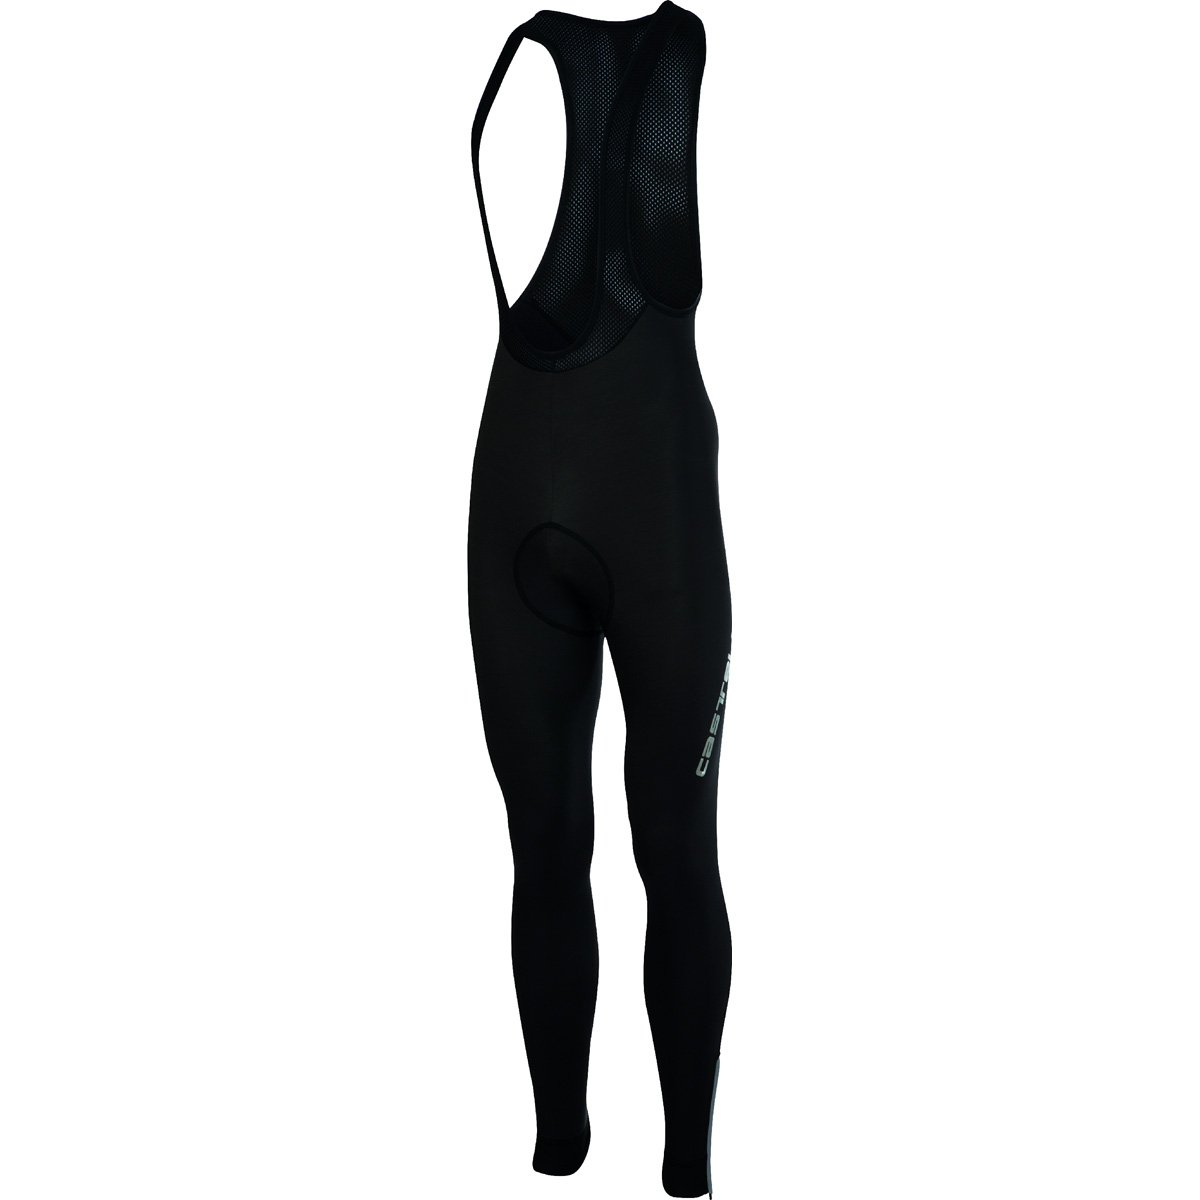 Castelli Herren Bibtights Nanoflex 2 Bibtight